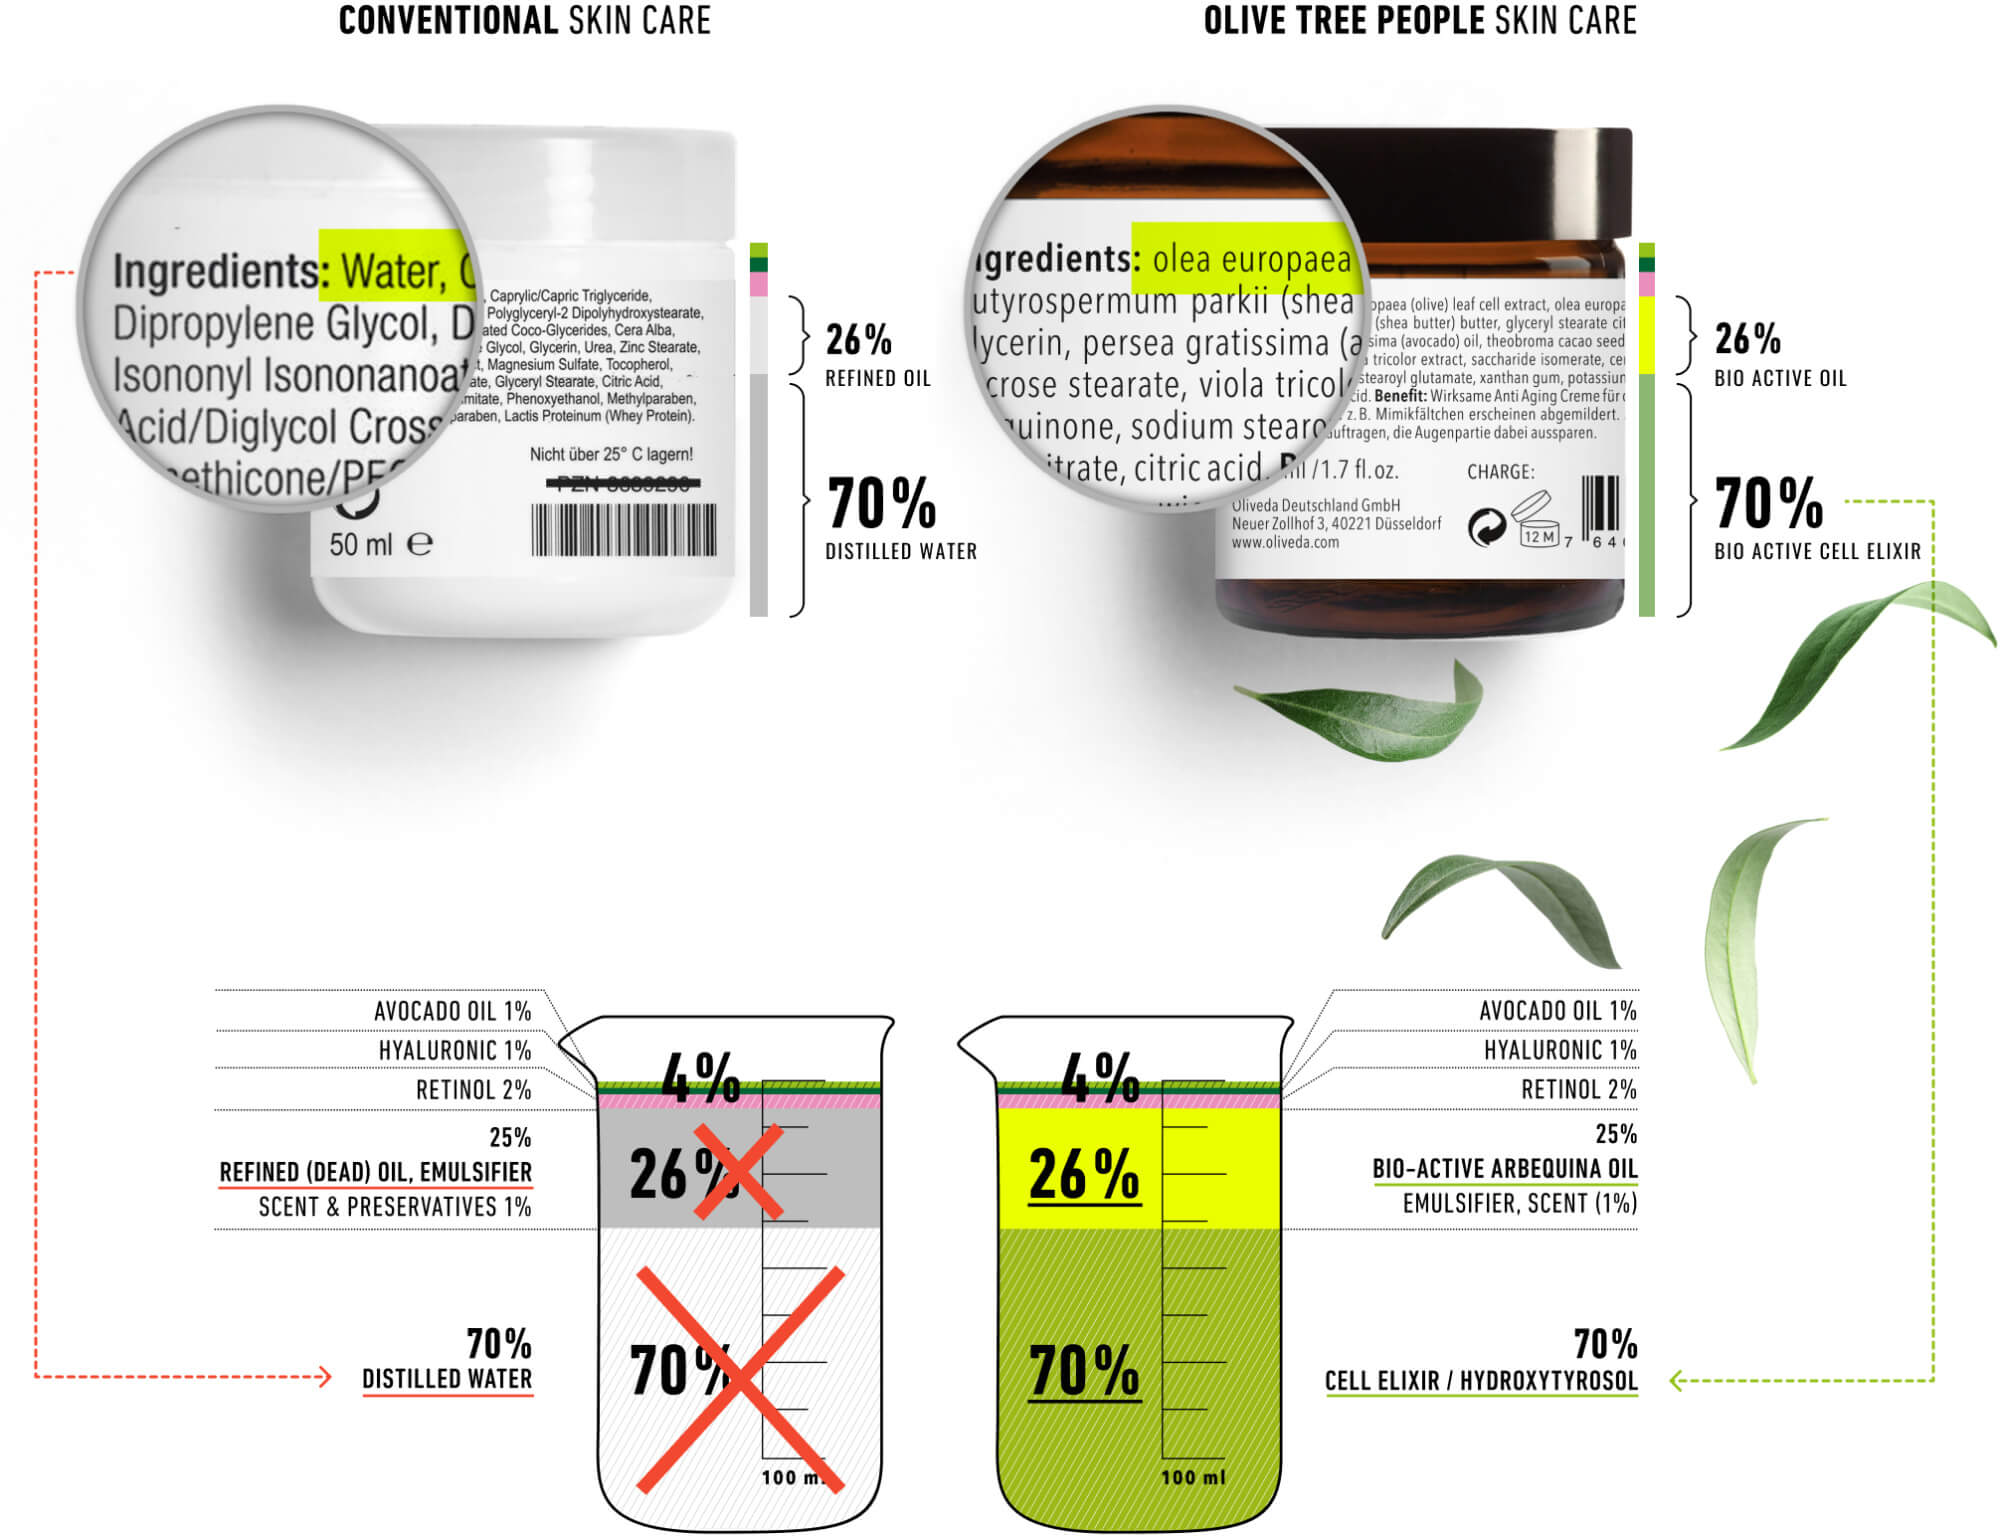 Comparison of conventional products versus Olive Tree People skin care products